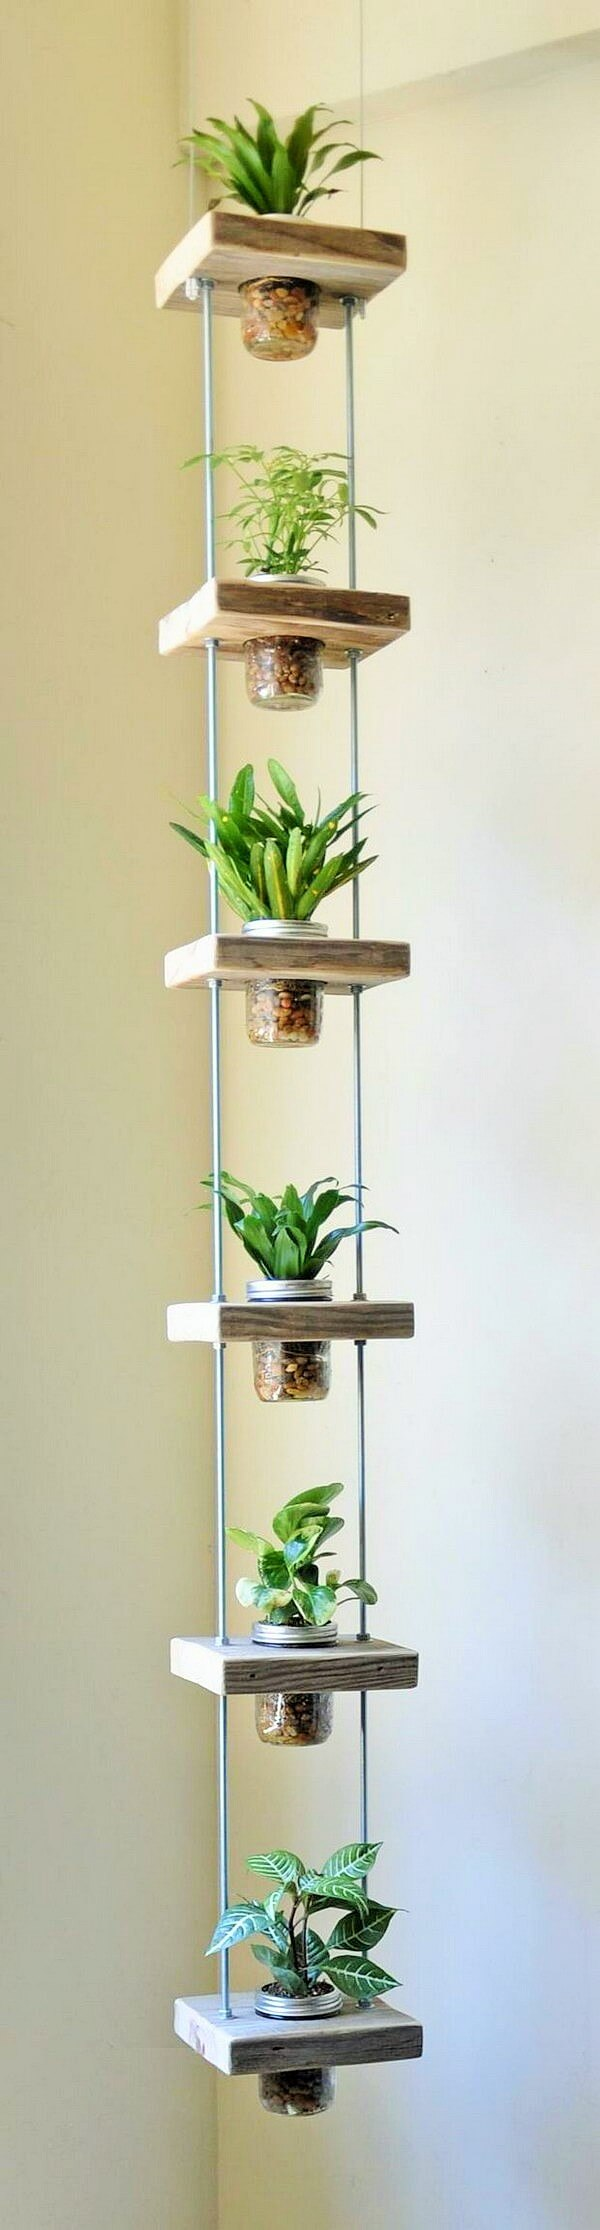 DIY-vertical-garden-ideas-18